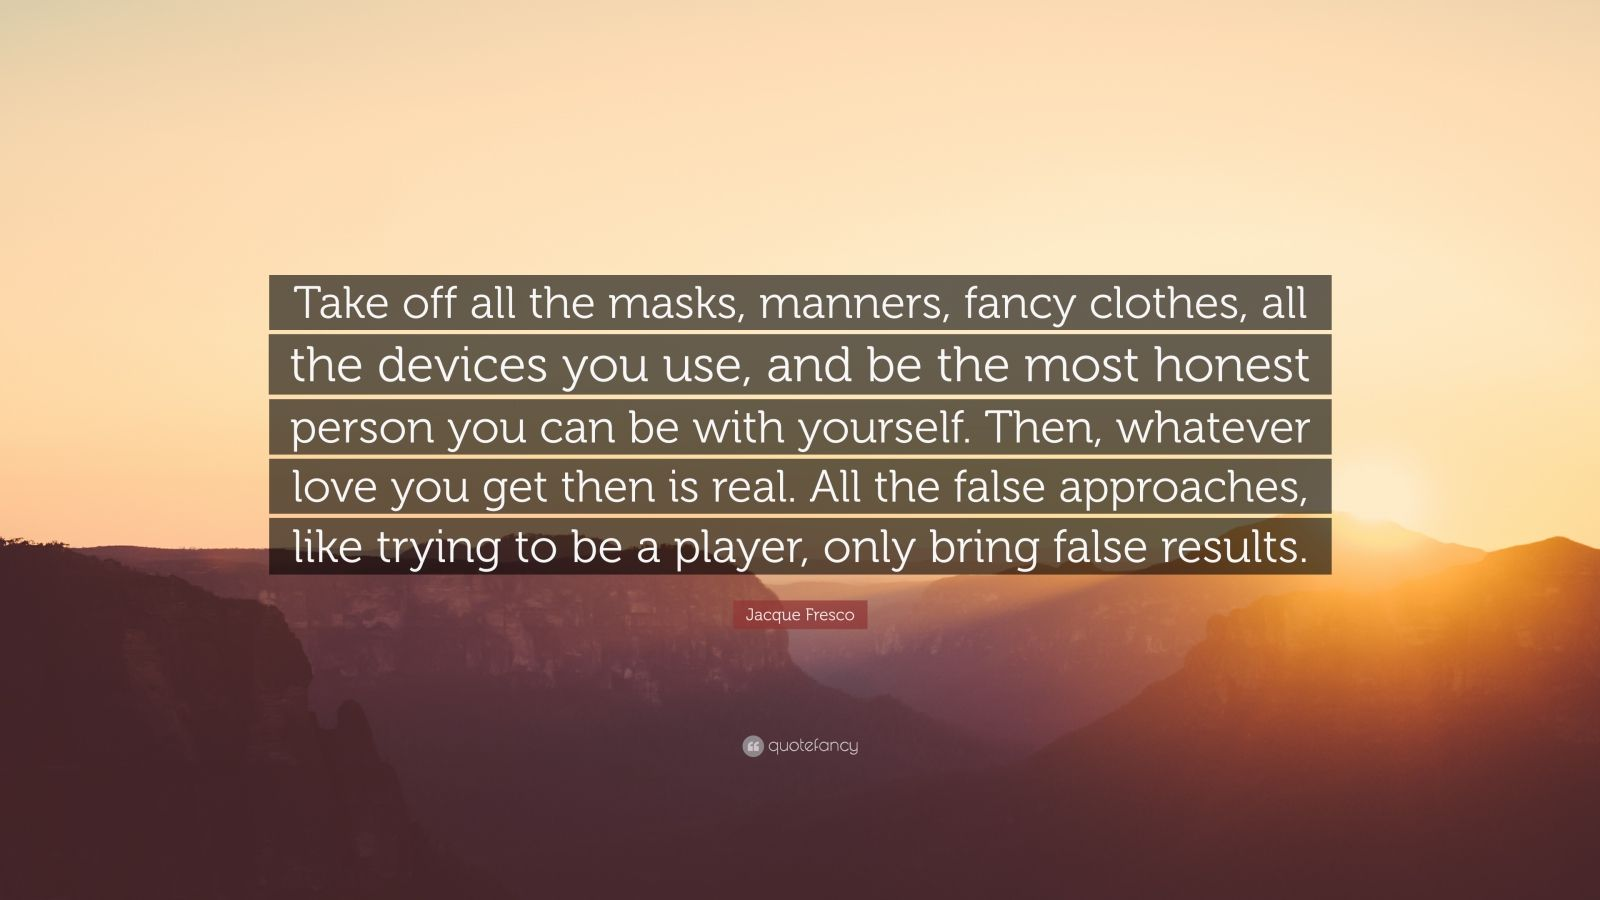 "Jacque Fresco Quote: ""Take off all the masks, manners, fancy clothes, all the devices you use, and be the most honest person you can be with yourself. Then, whatever love you get then is real. All the false approaches, like trying to be a player, only bring false results."""